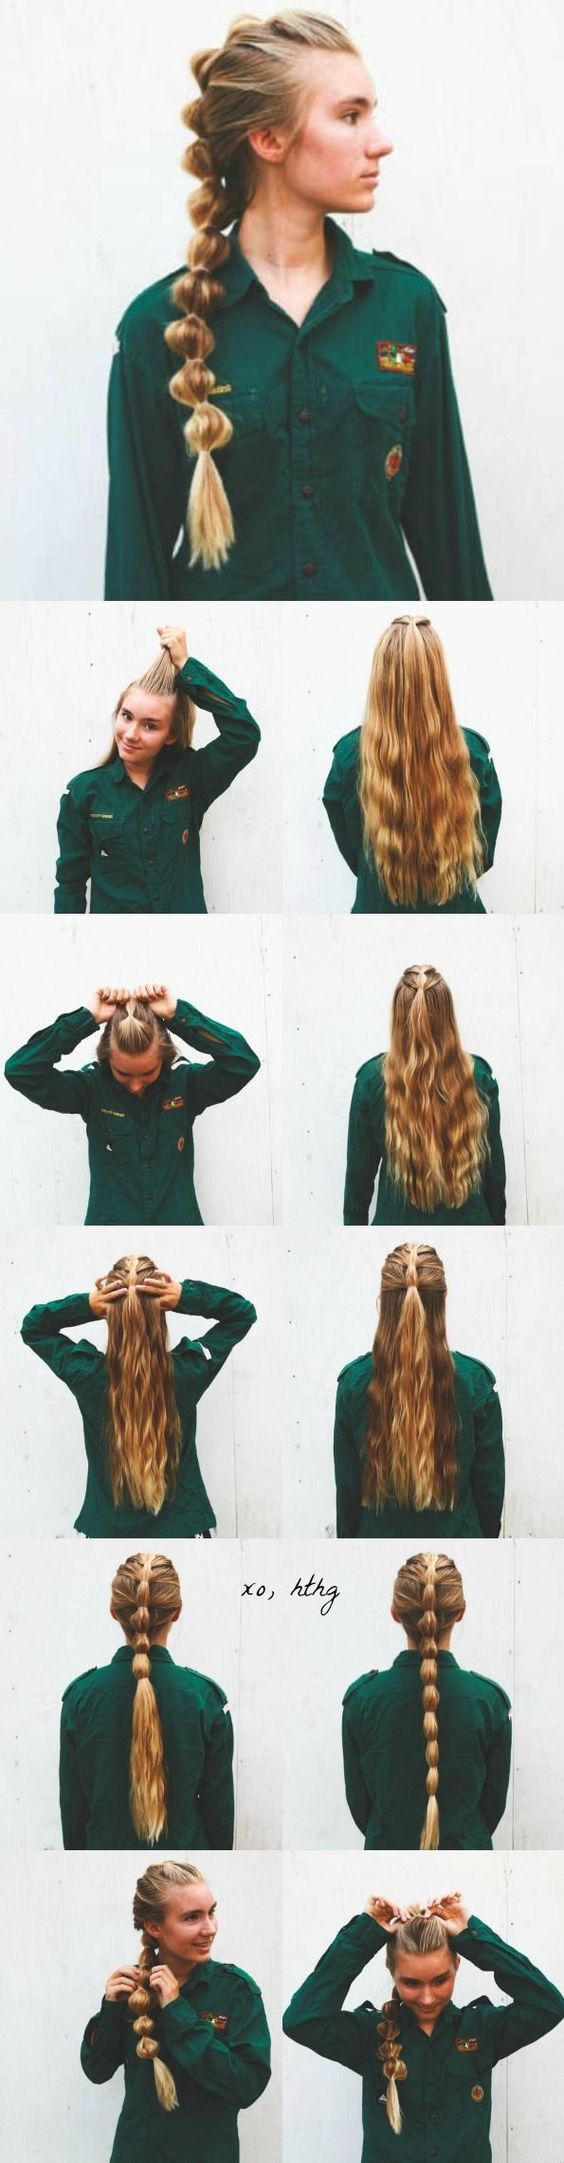 Try this style when your hair is still damp in the morning. You will have a wavy beach look when you take it down in the evening.